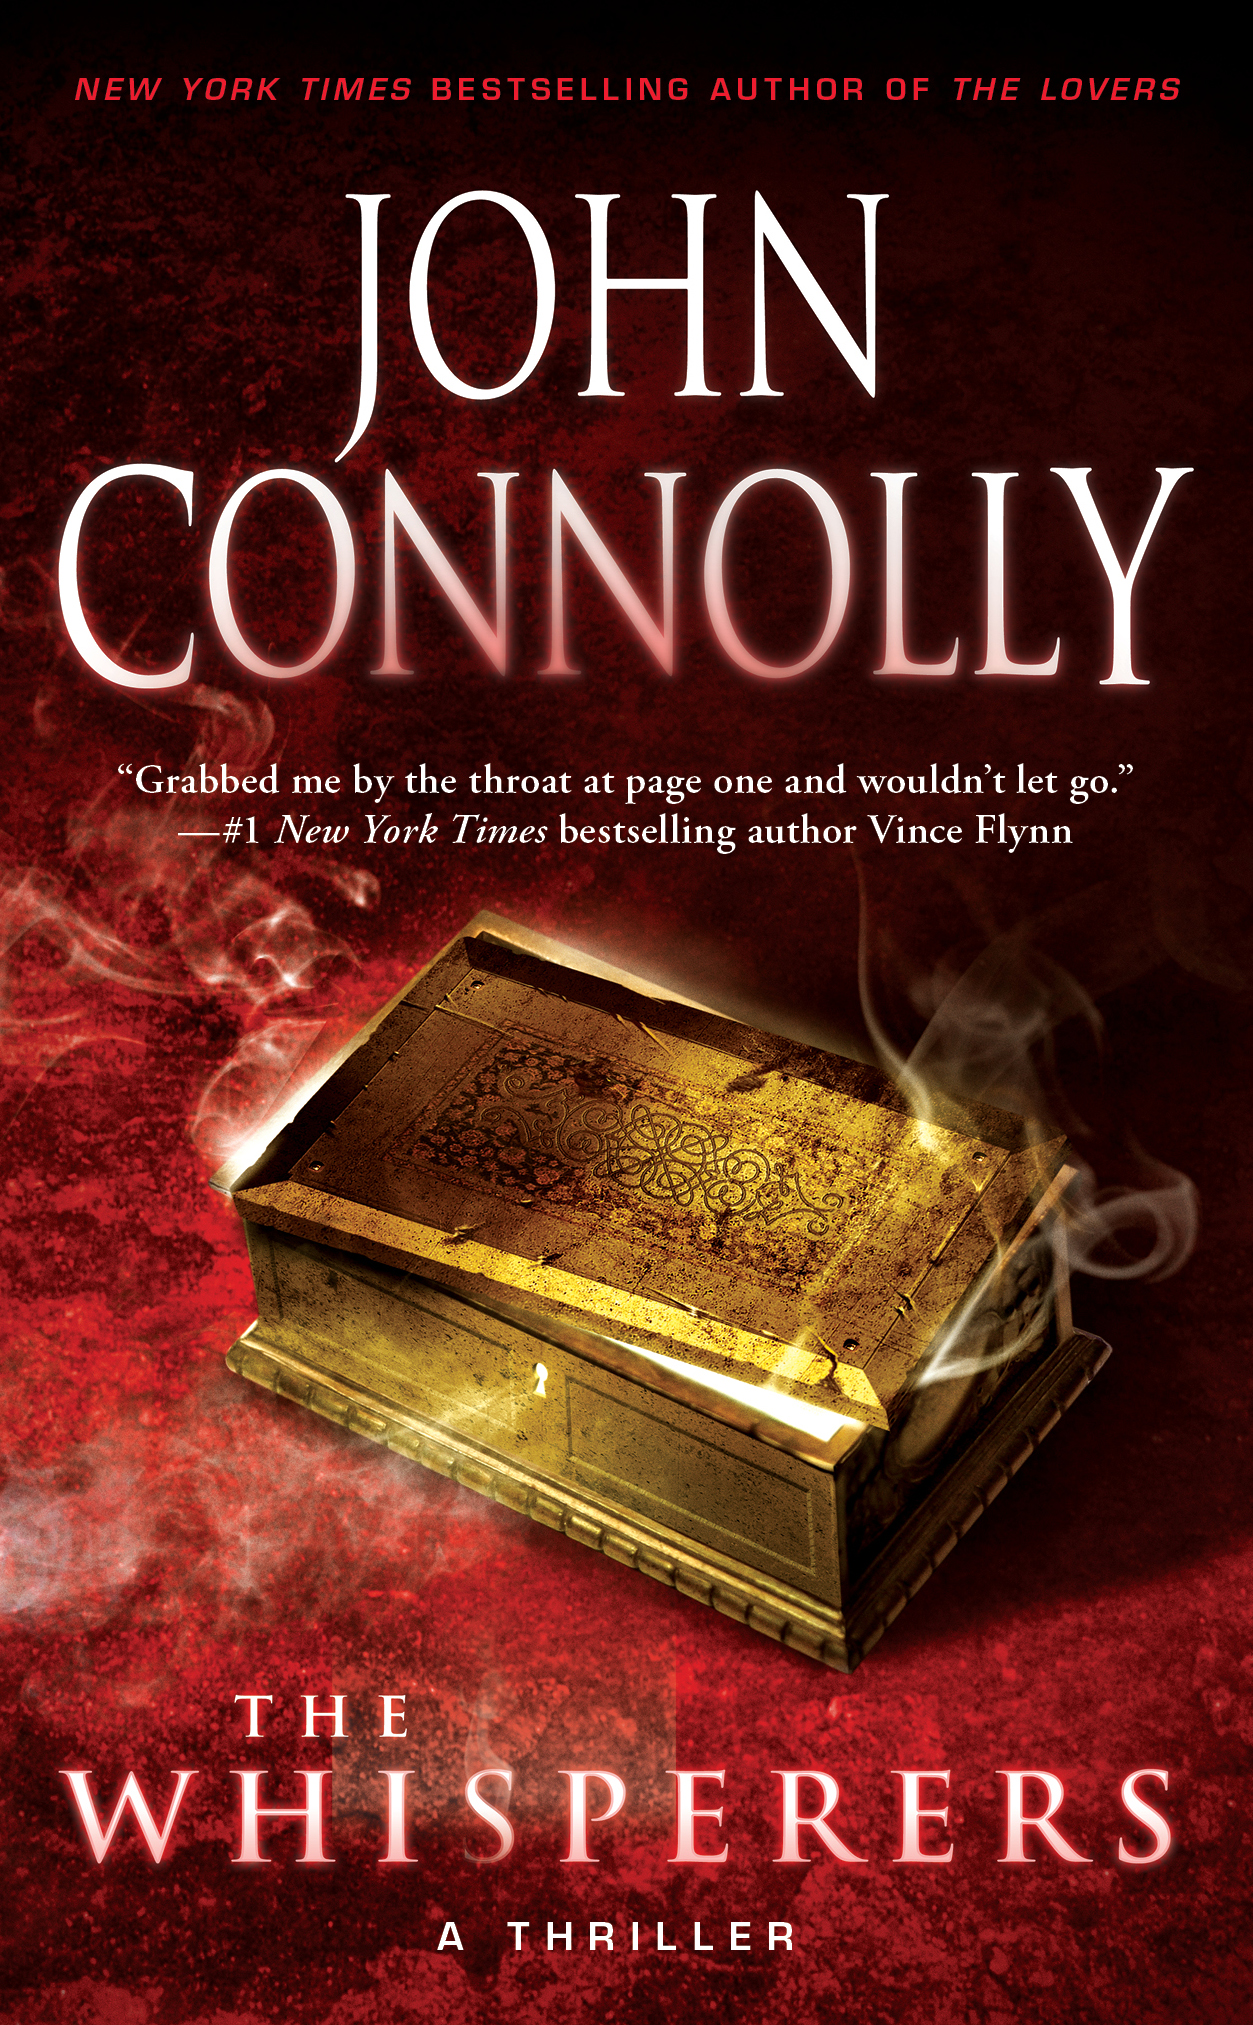 The Whisperers By: John Connolly